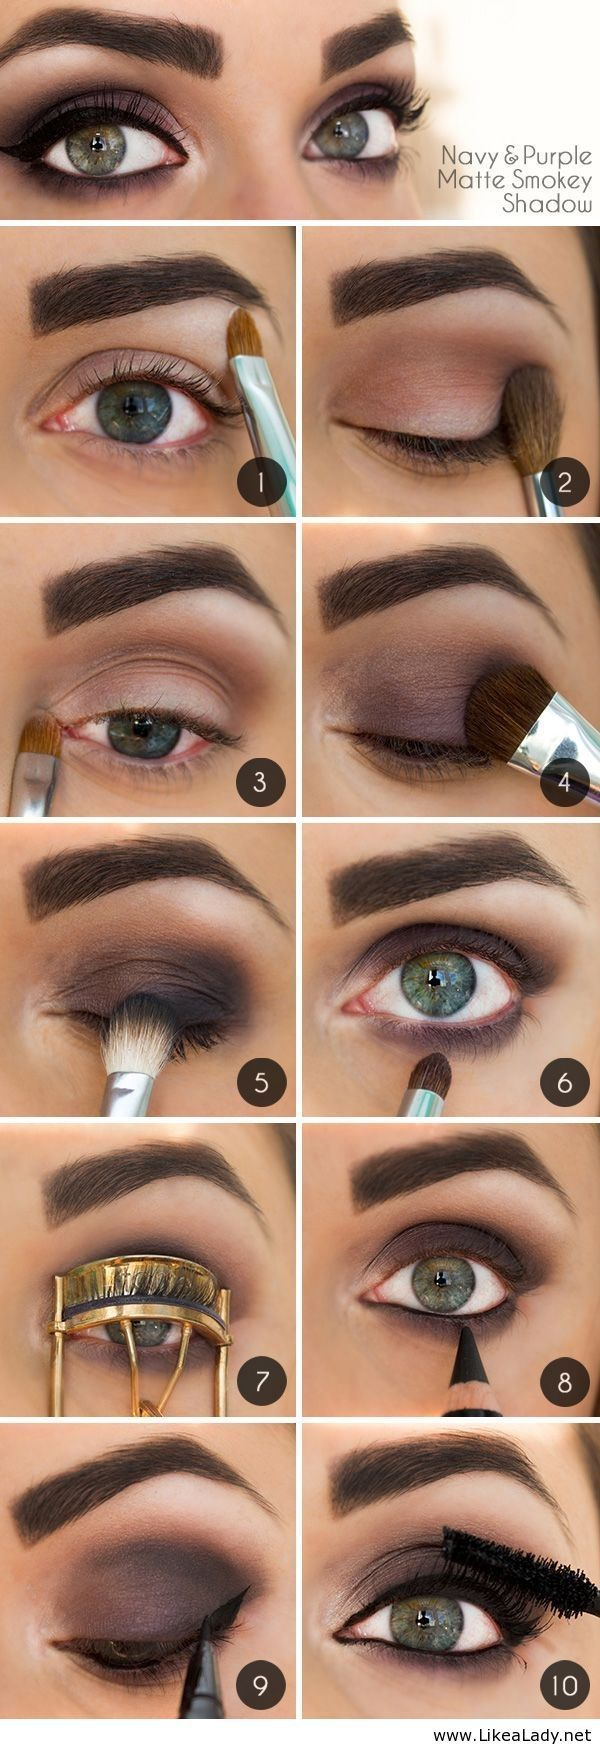 11perfect smoky eye makeup tutorials for different occasions brown smoky eye makeup tutorial with full brows baditri Image collections